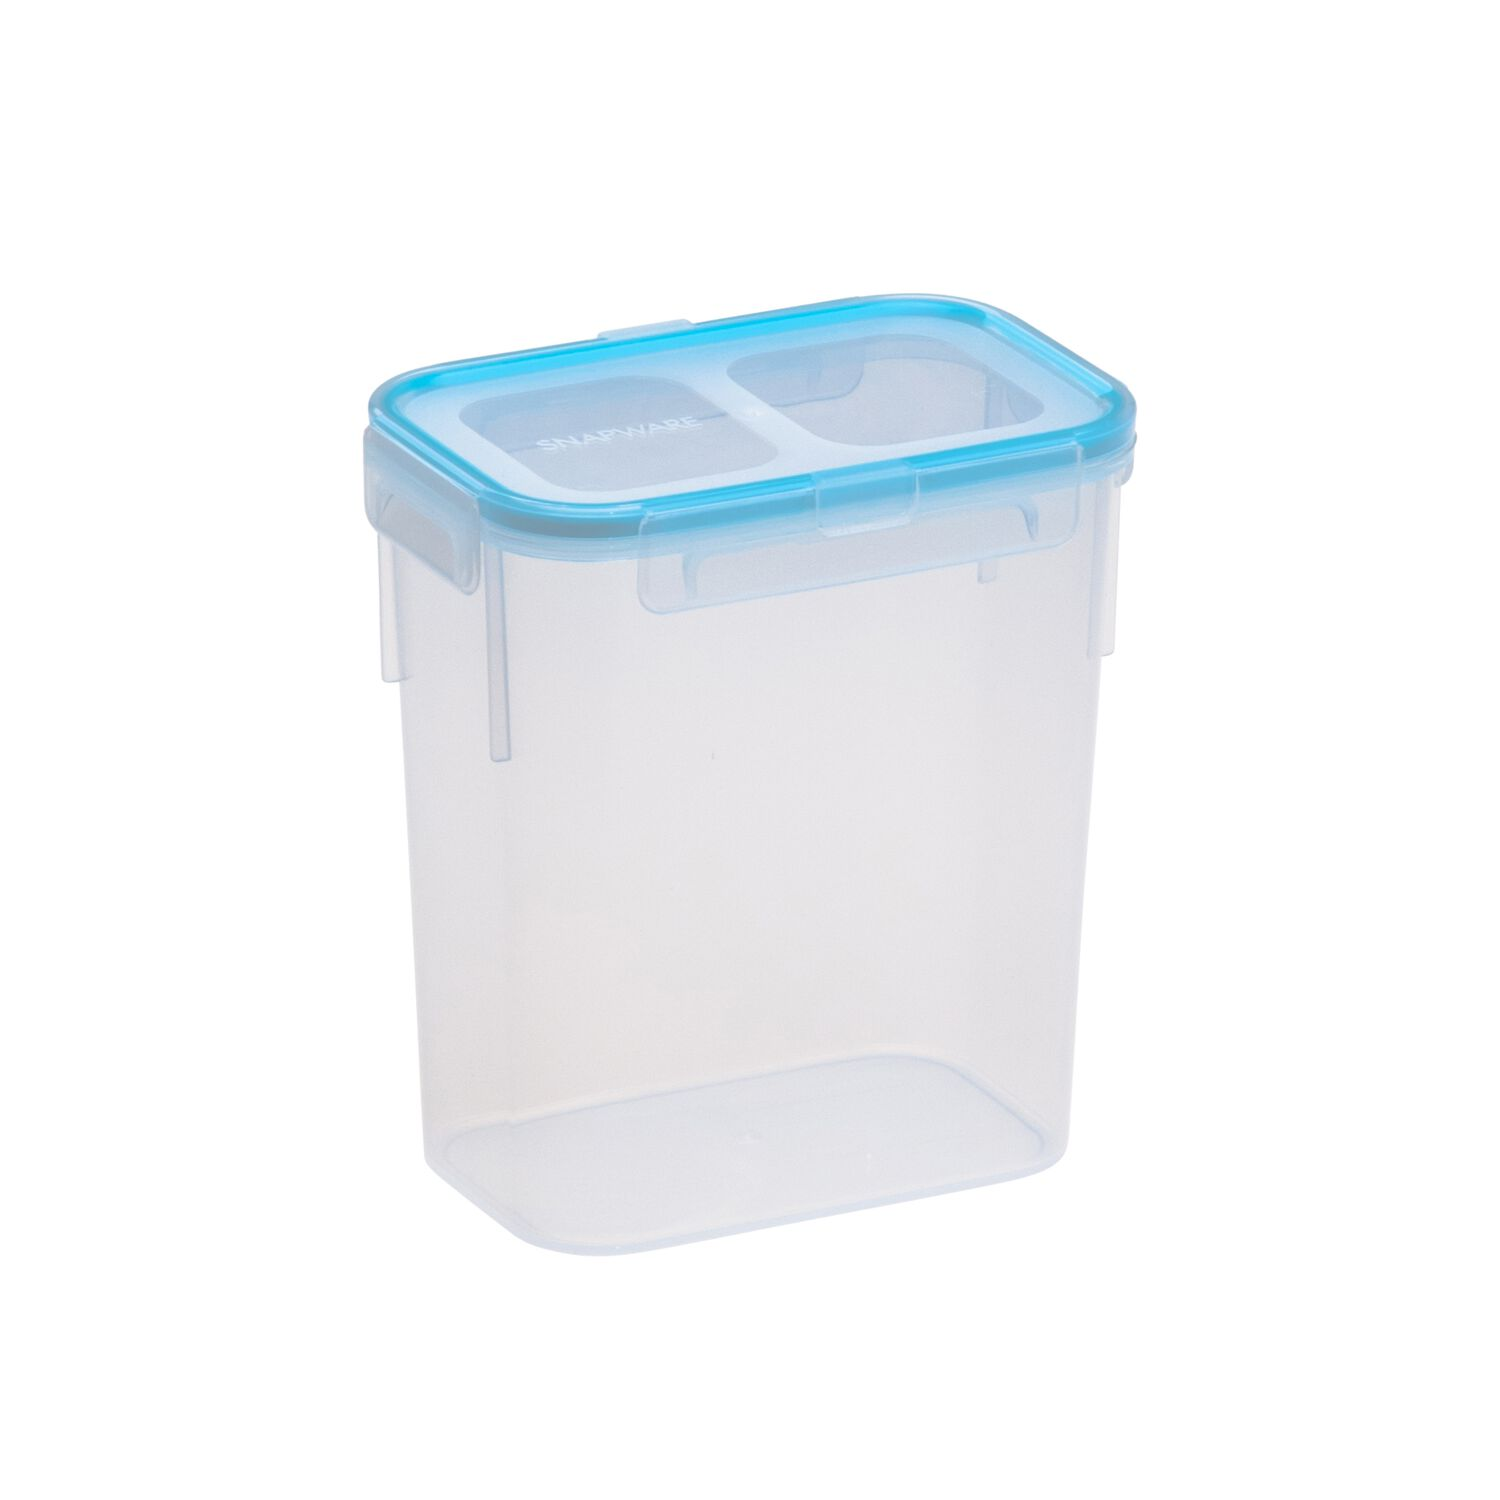 Snapware Airtight Food Storage 7.3 Cup Rectangular Container